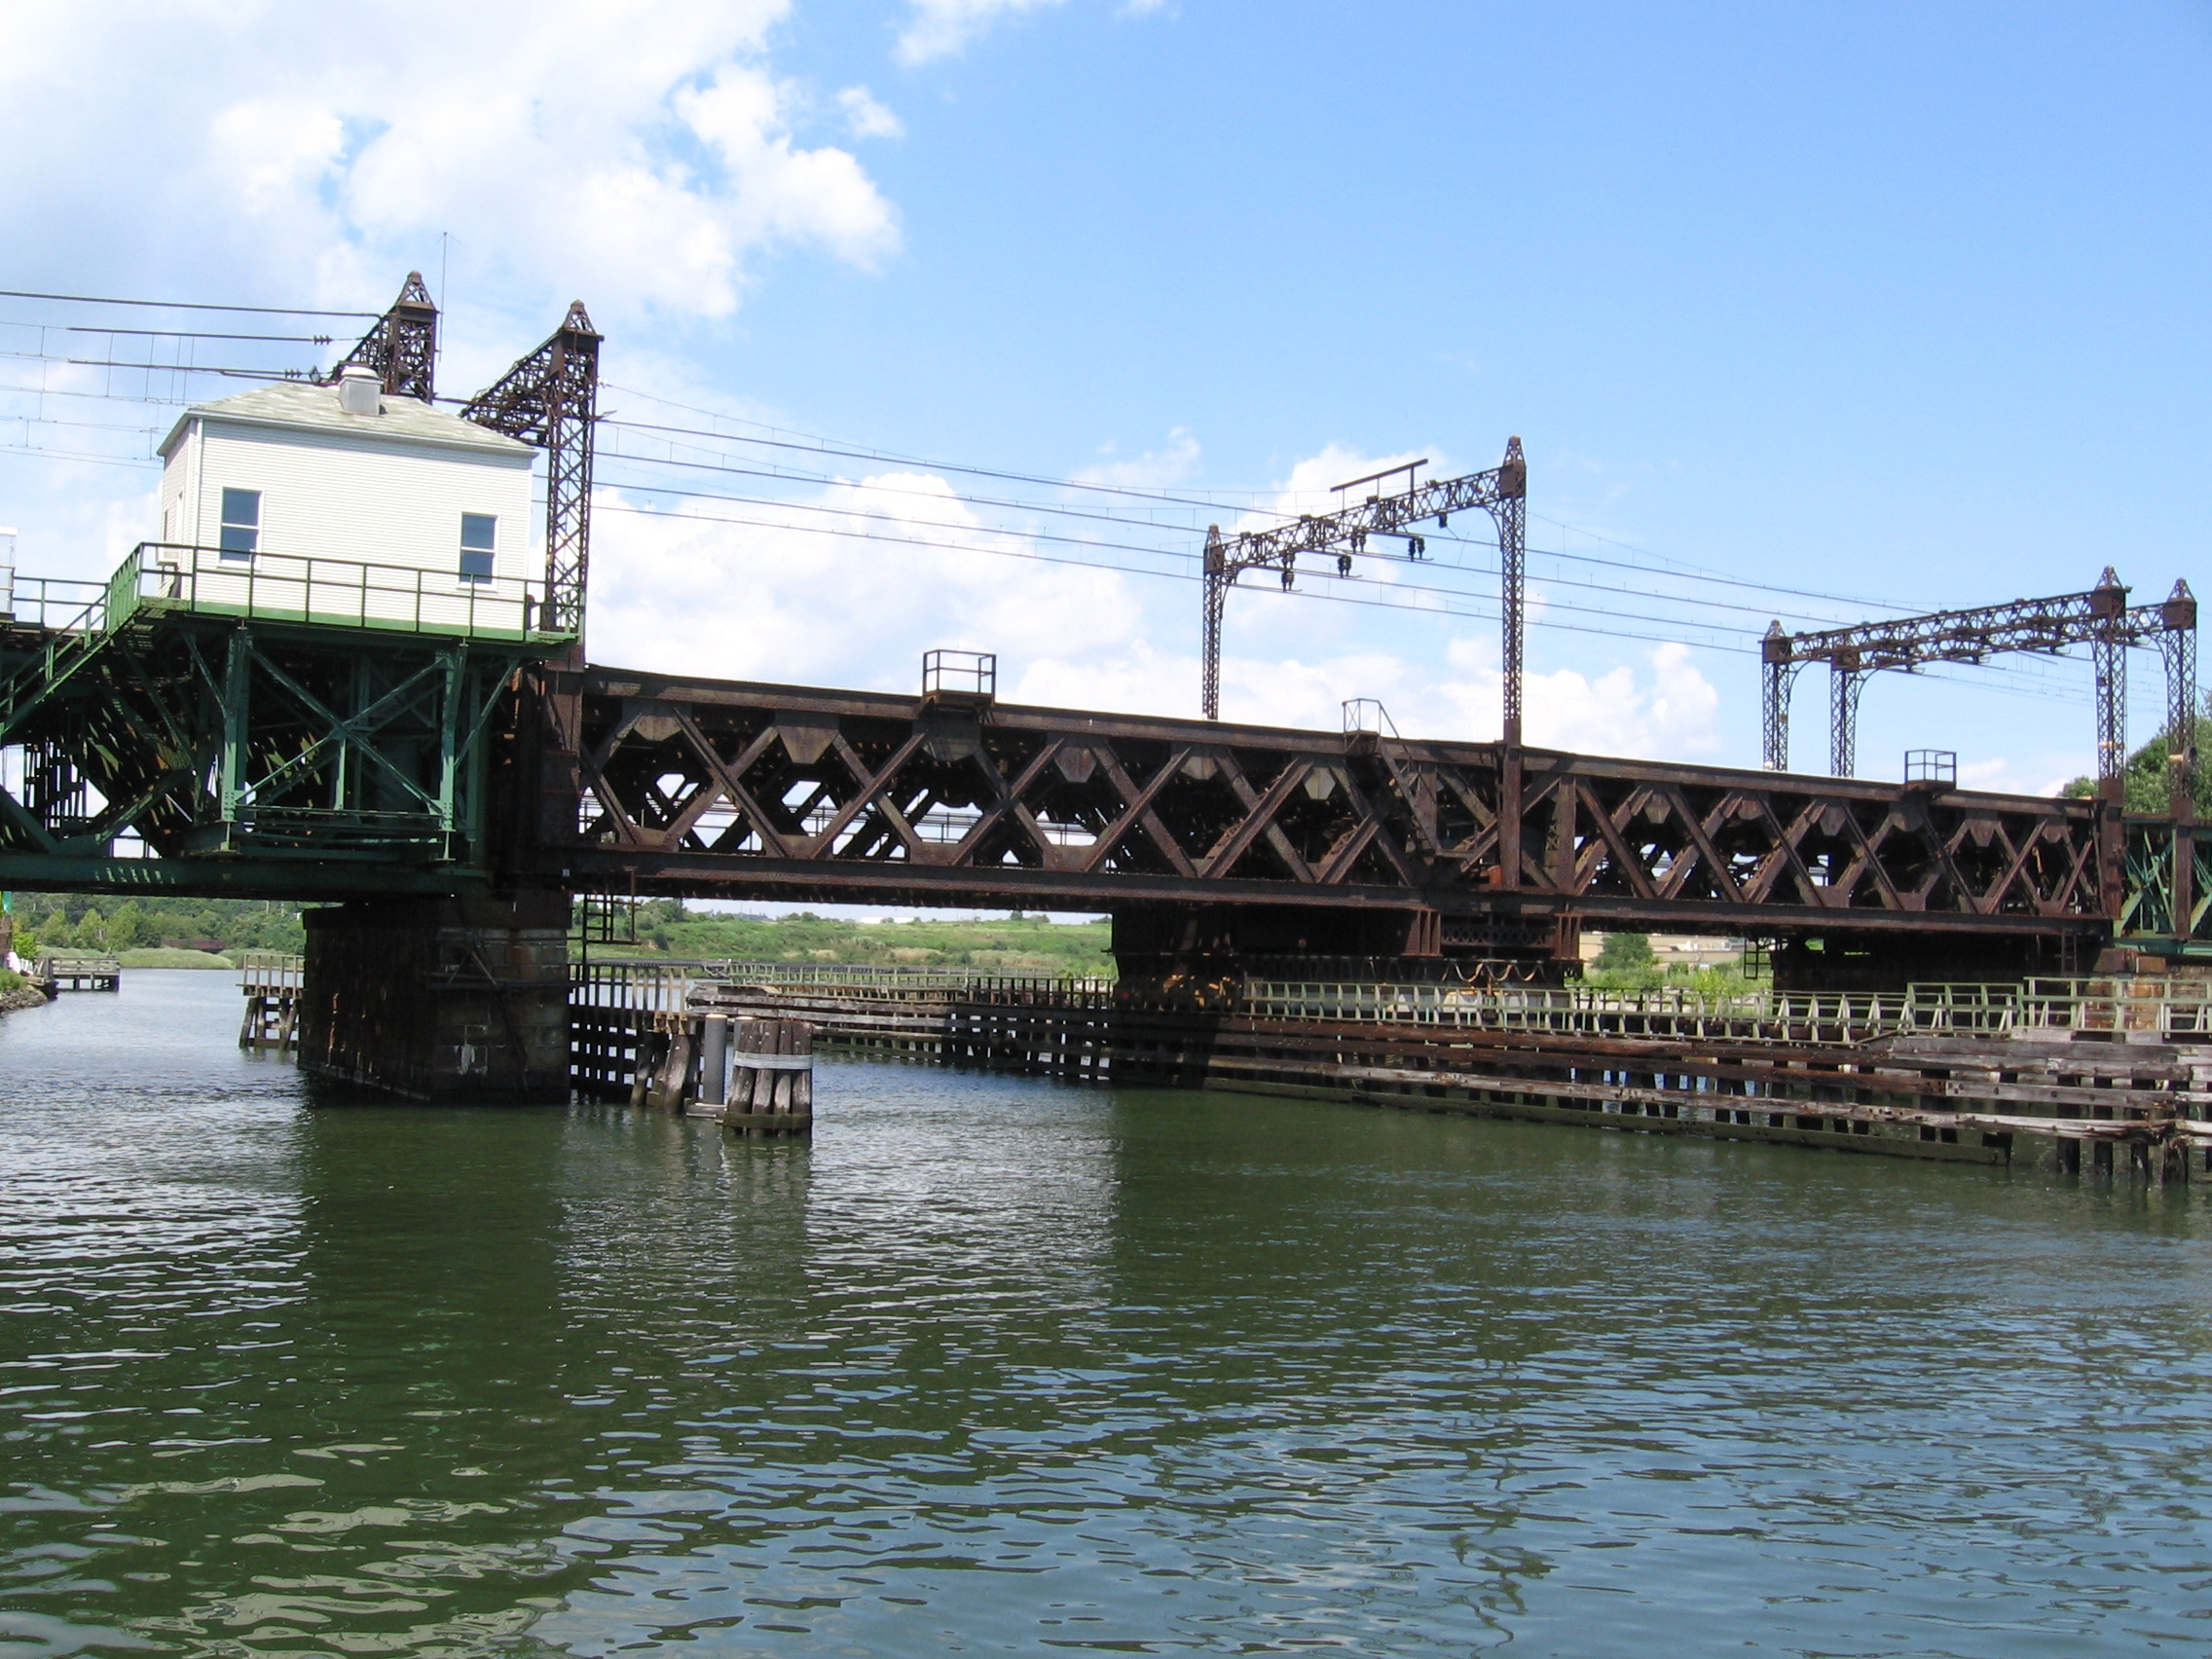 Lamont's reconsideration of the $1.2 billion Walk Bridge